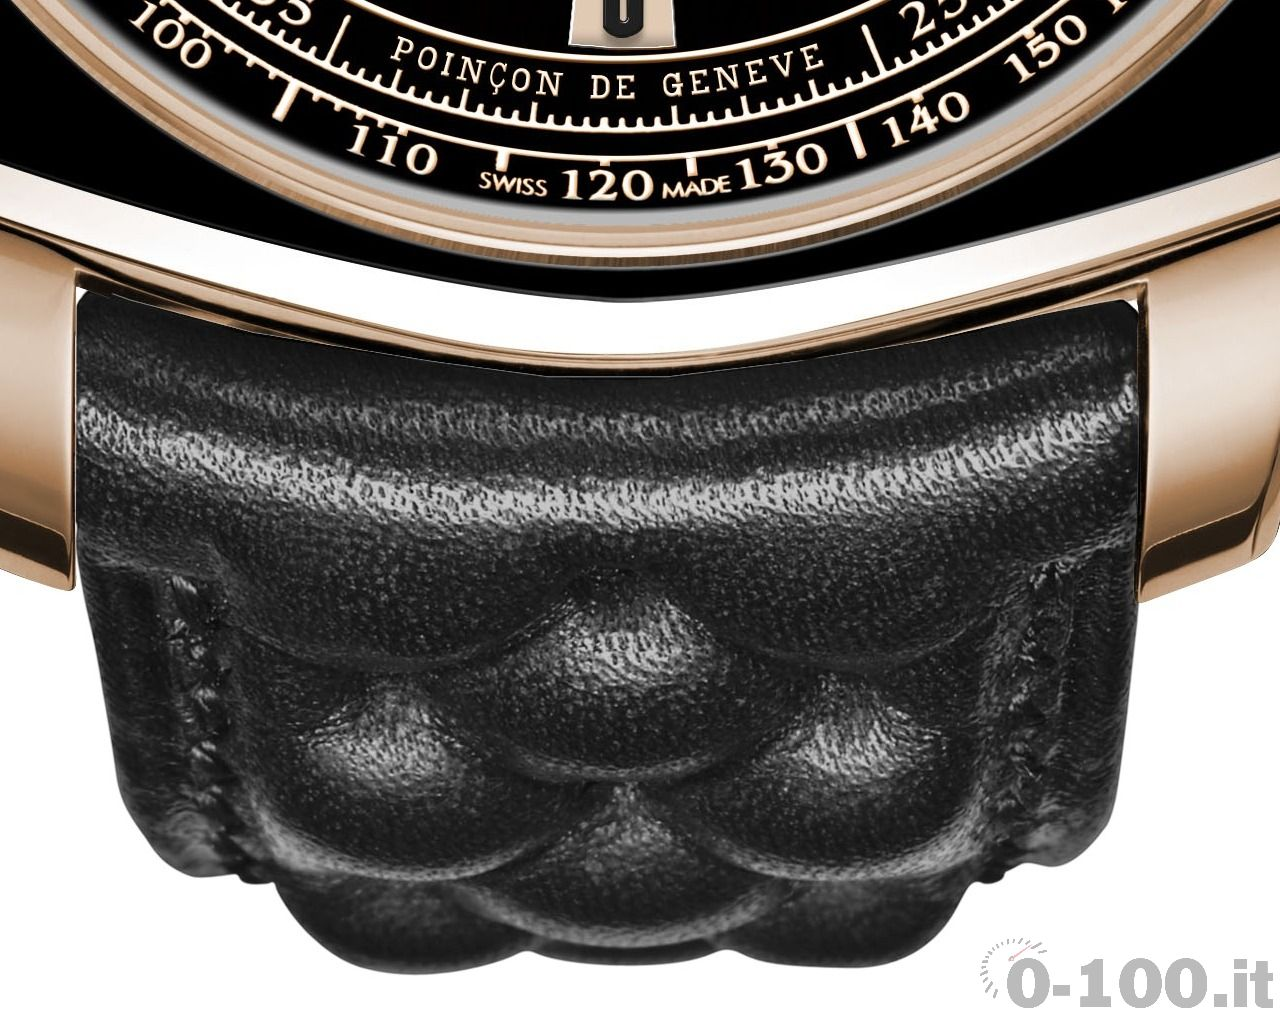 roger-dubuis-monegasque-club-limited-edition_0-1004